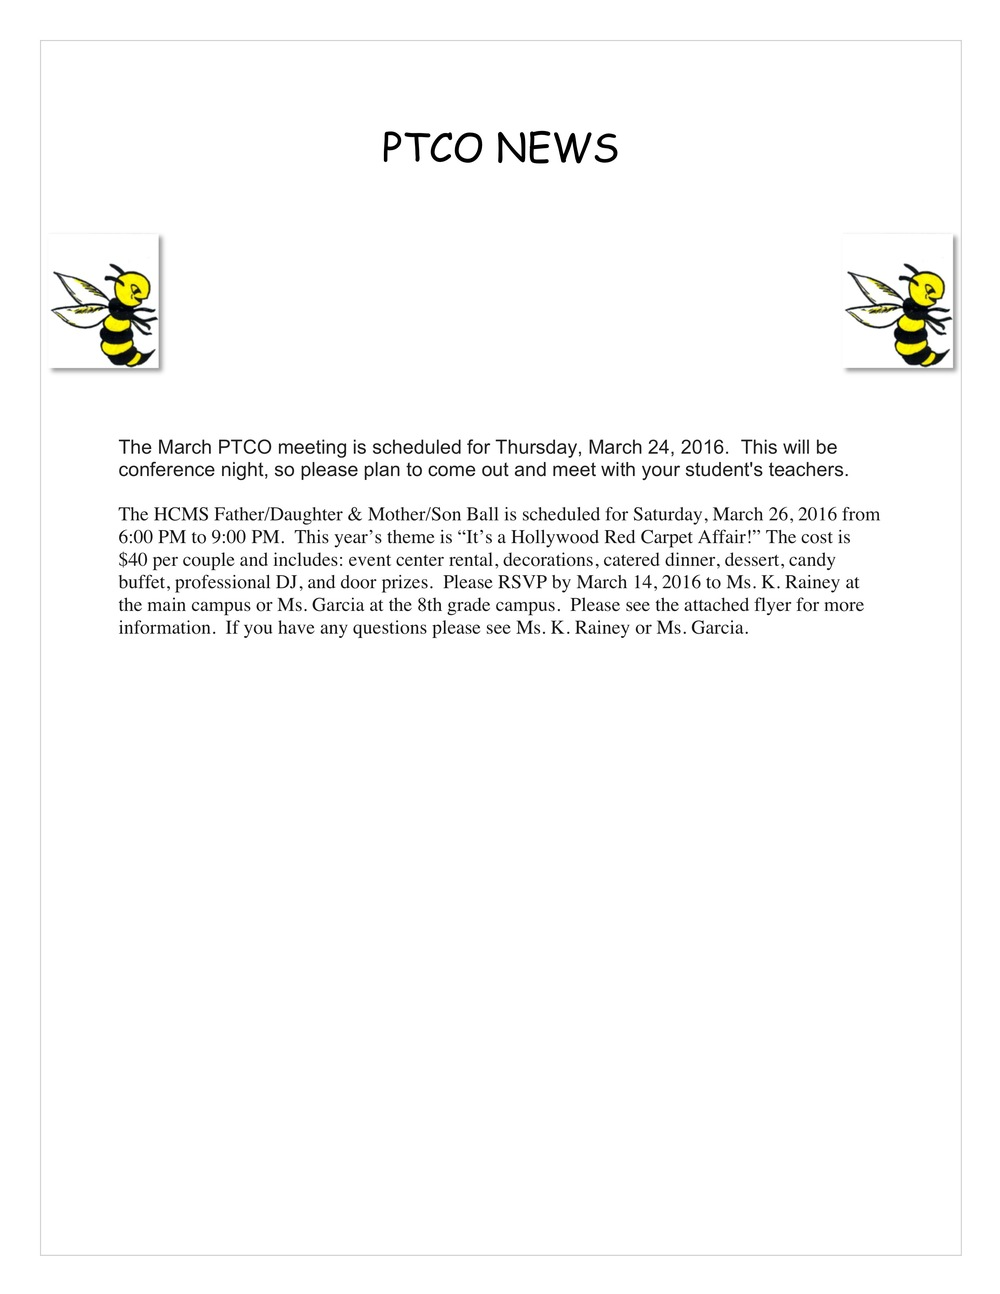 February 29, 2016 Newsletter 8th Grade 3pdf-image.jpeg